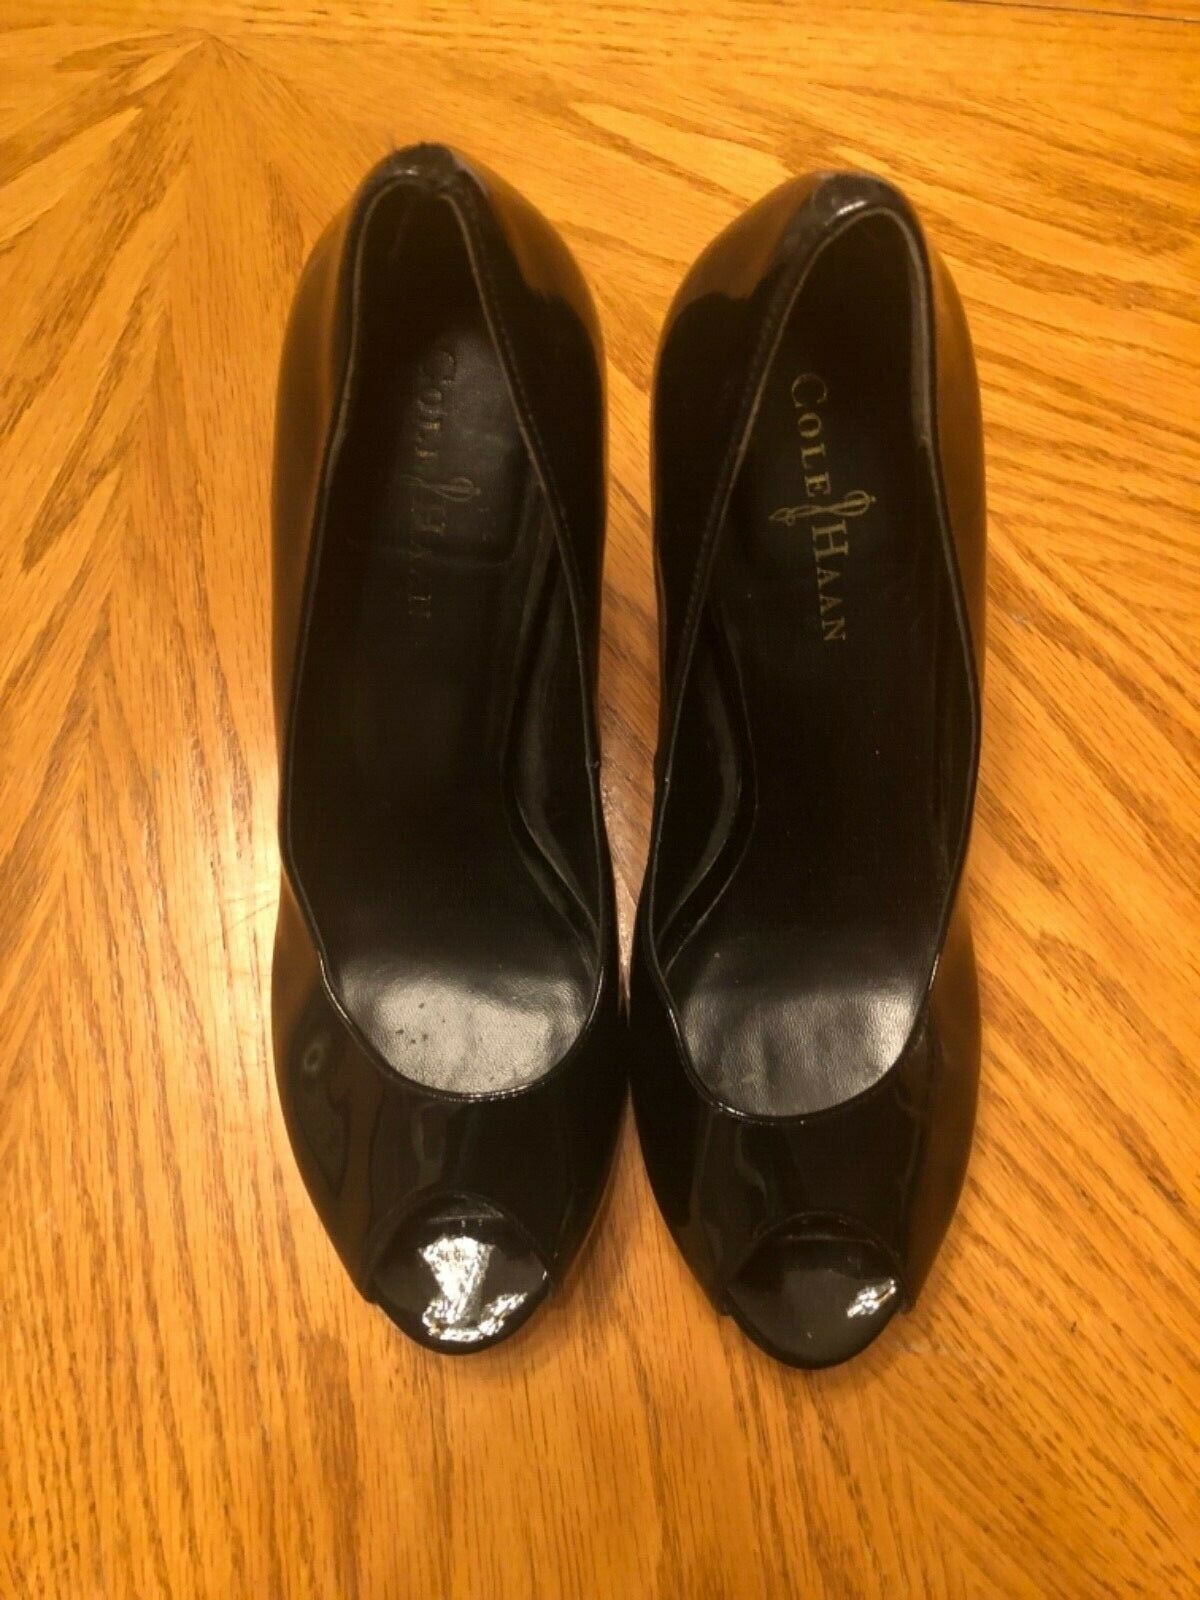 Cole Haan Open Toe Heels Heels Heels Black Leather Wood Soles Size 9B 8cc043